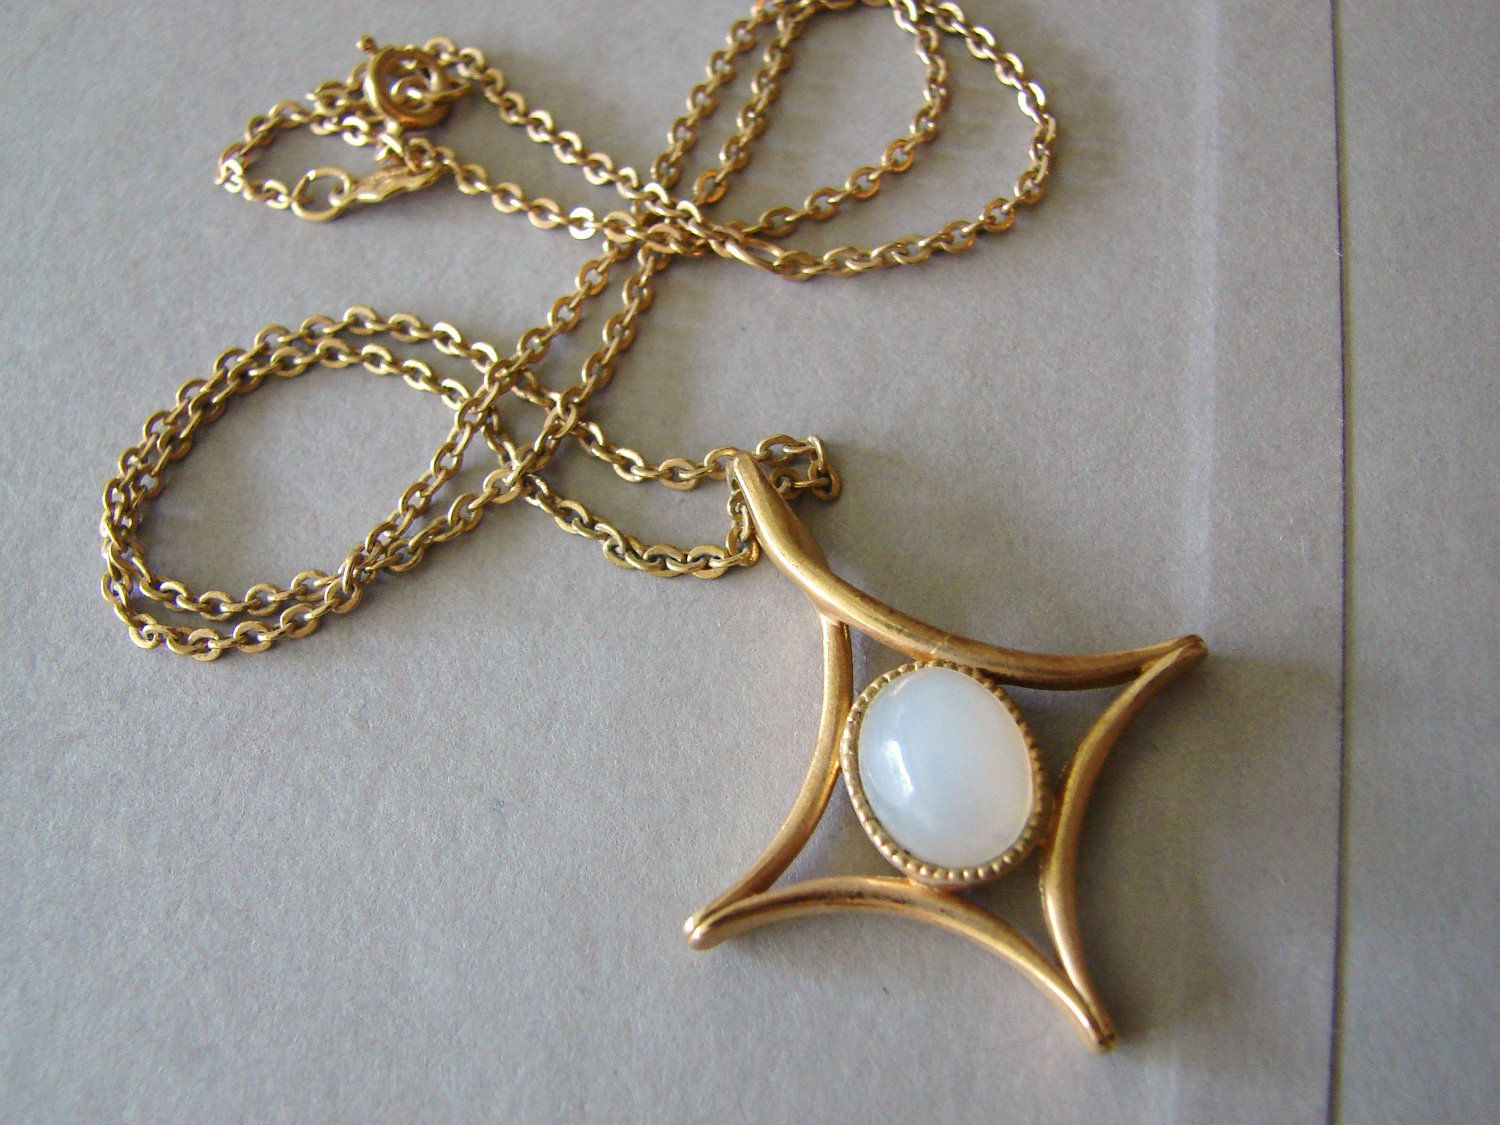 Vintage sarah coventry gold and opal north star necklace vintage sarah coventry gold and opal north star necklace aloadofball Images